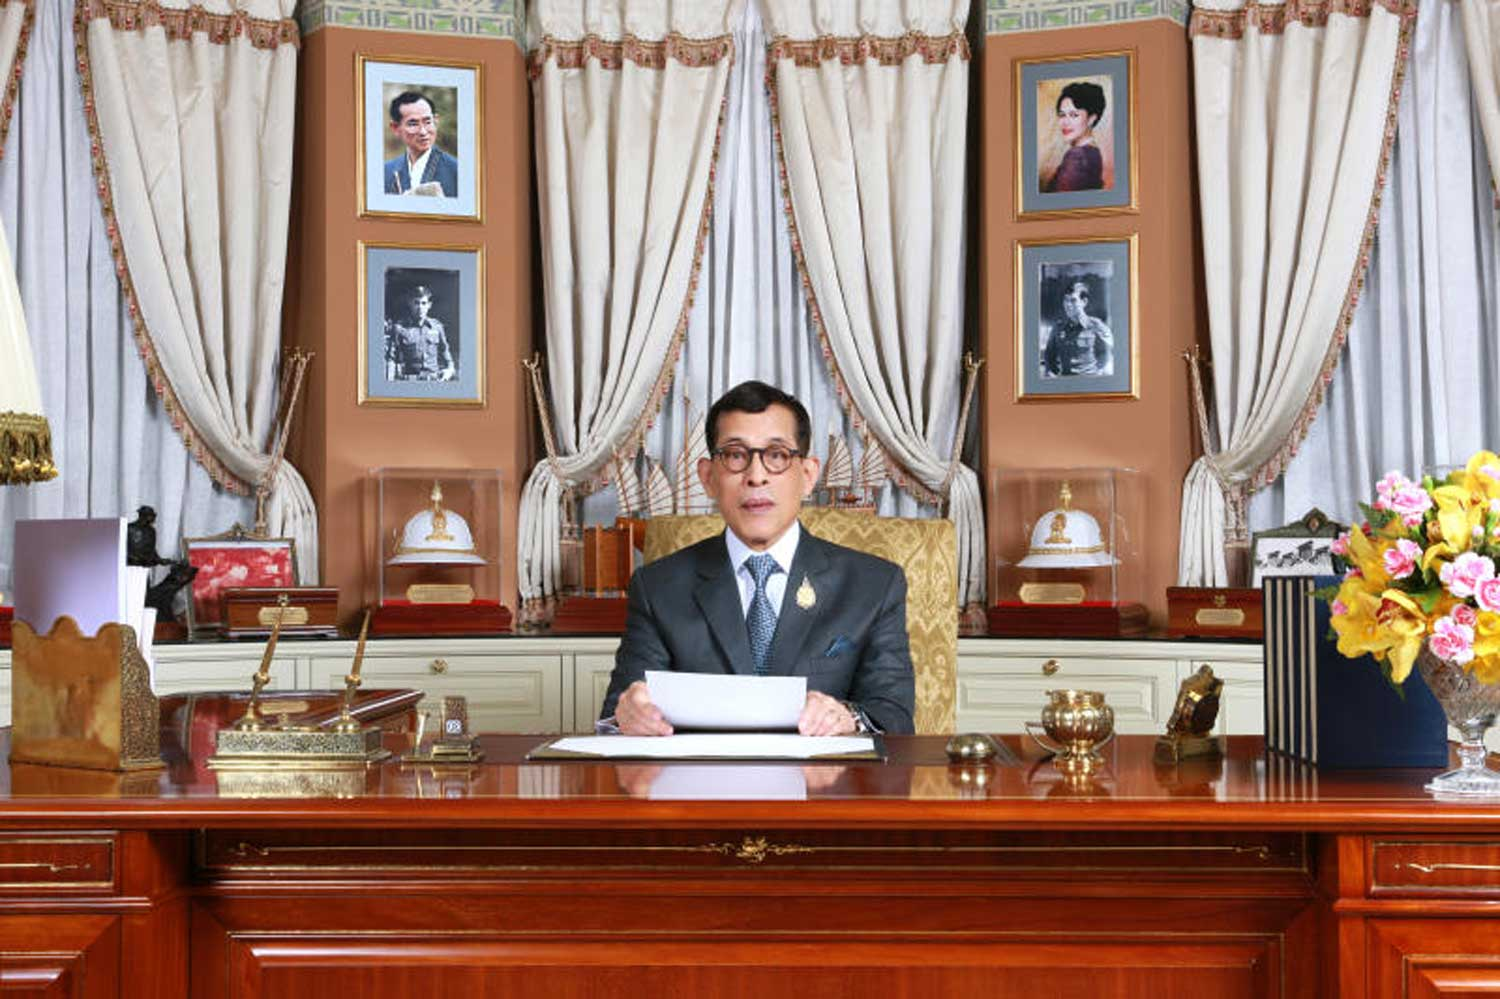 His Majesty the King extends His New Year wishes on Tuesday night. (Photo courtesy of the Bureau of the Royal Household)